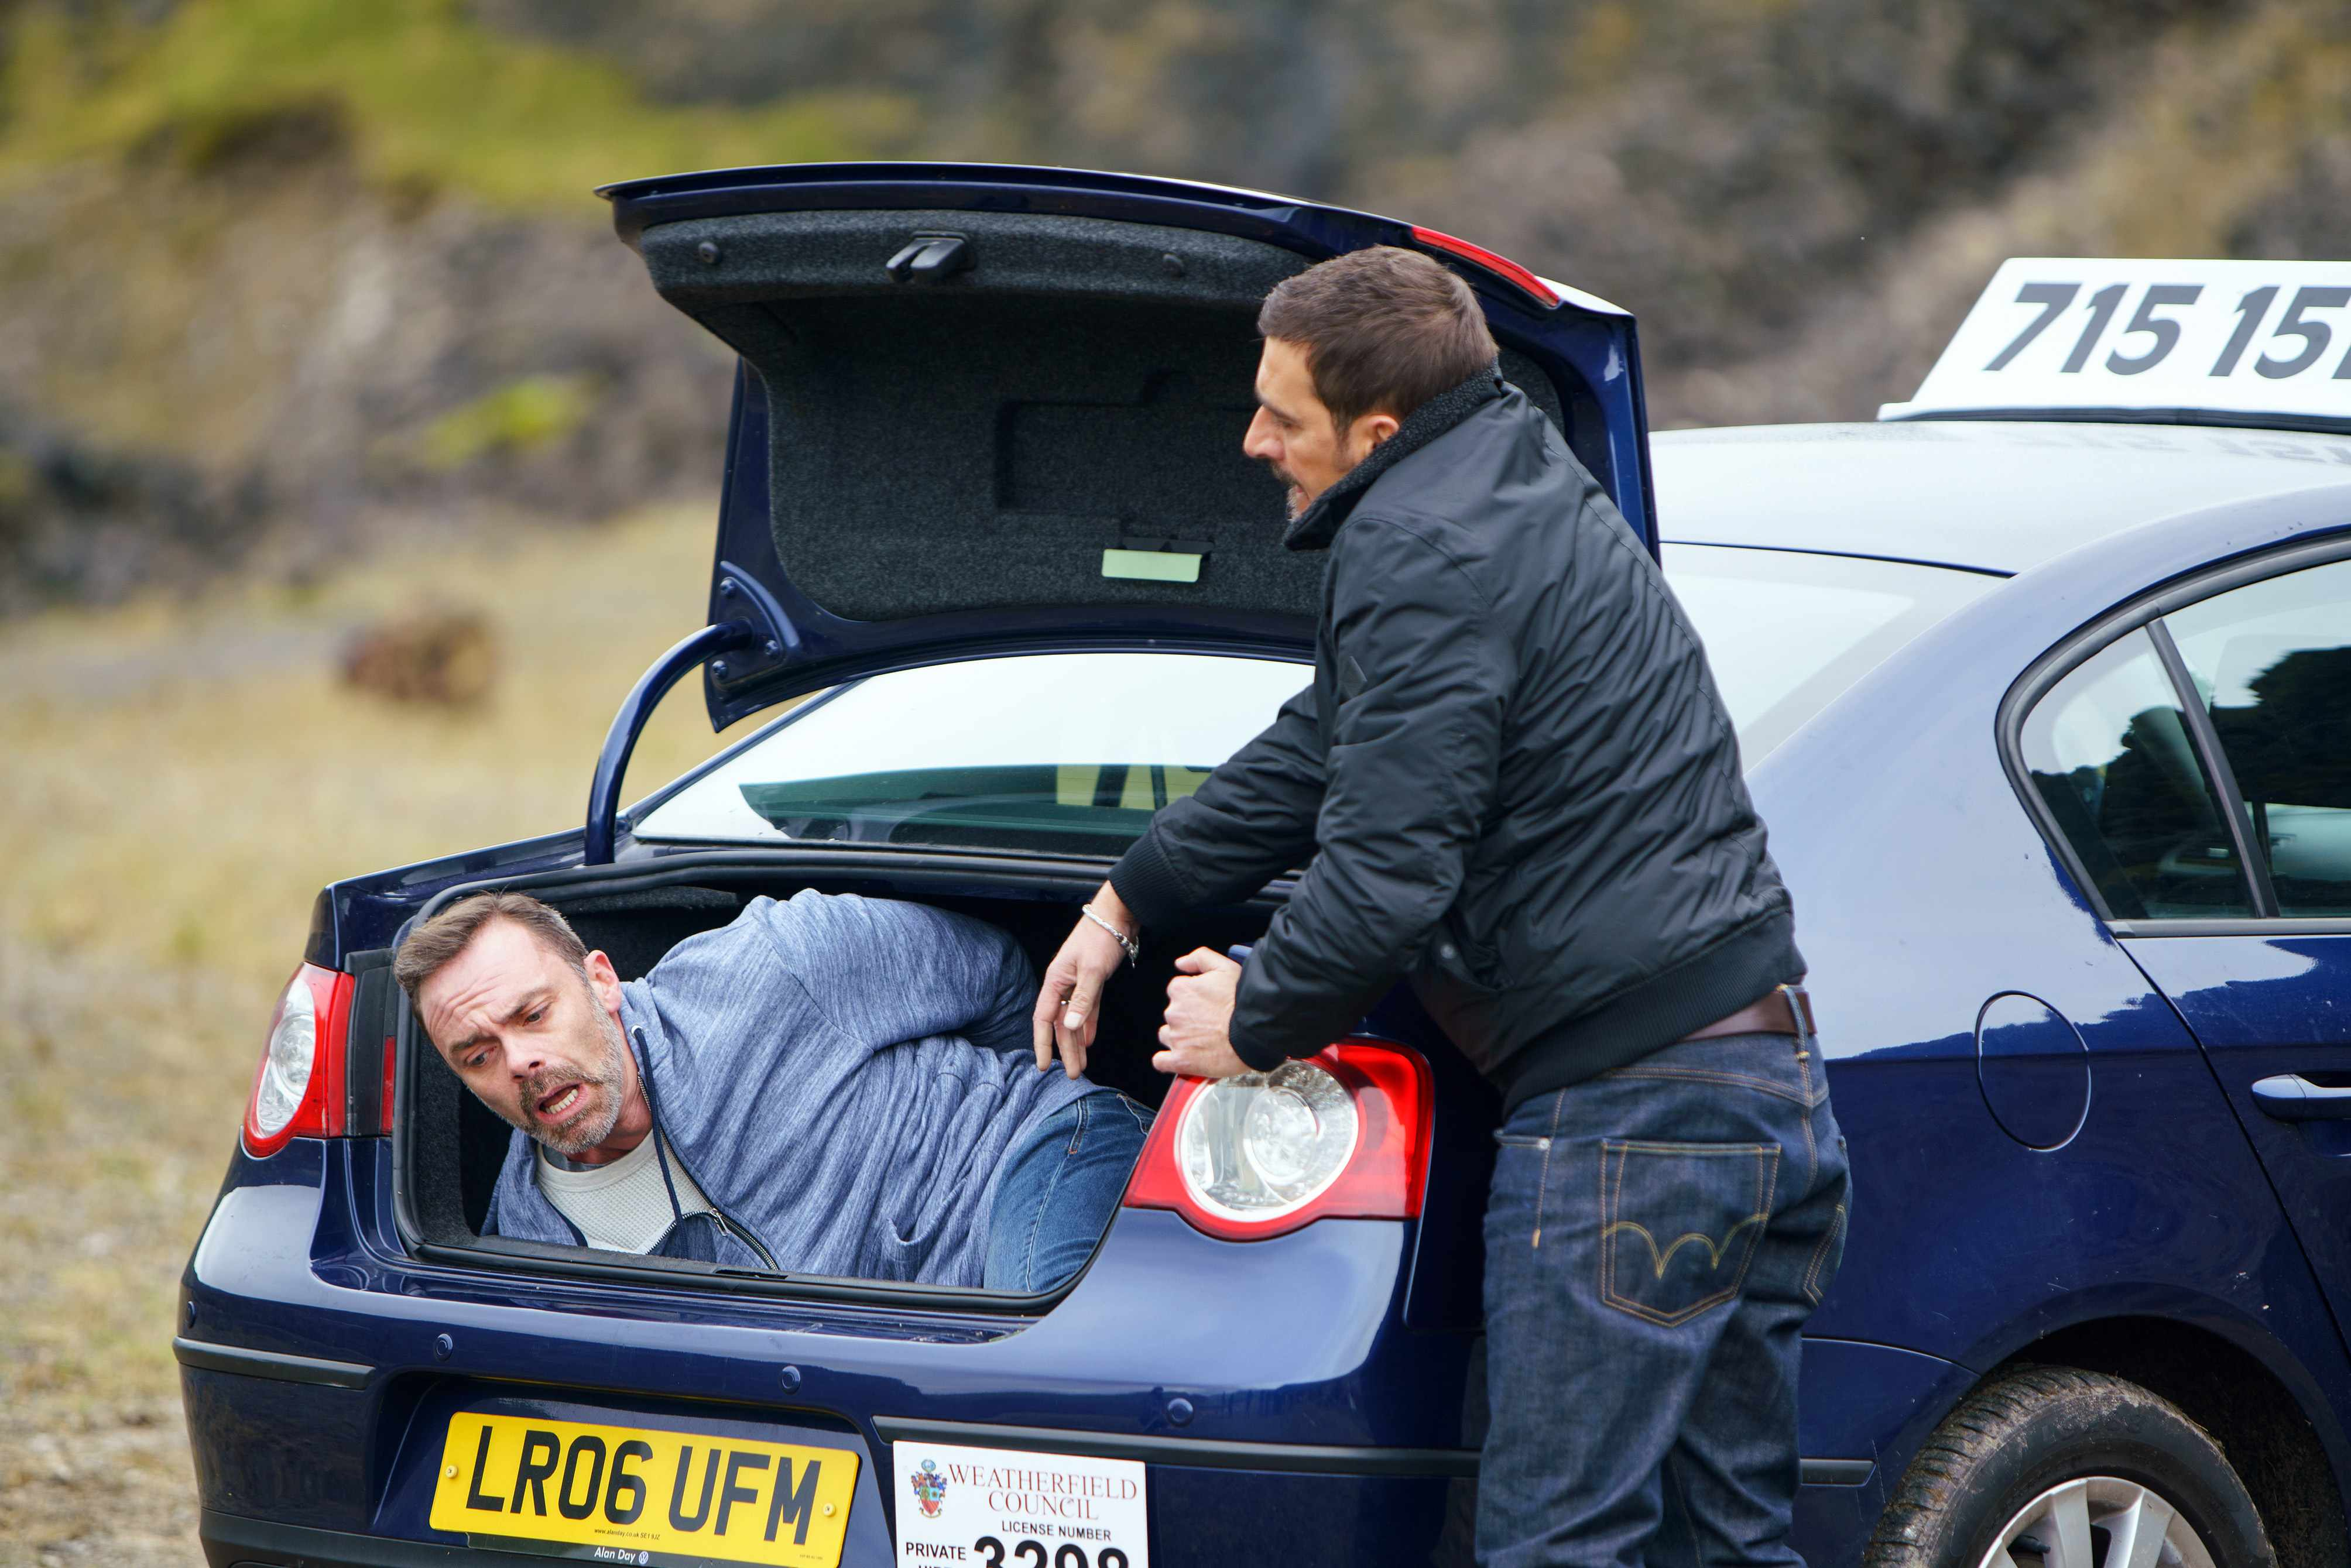 FROM ITV   STRICT EMBARGO  Print media - No Use Before Saturday 9th December 2017 Online Media -  No Use Before 0700hrs Saturday 9th December 2017  Coronation Street - Ep 933536  Monday 25th December 2017   Determined to take his revenge Peter Barlow [CHRIS GASCOYNE] has Billy Mayhew [DANIEL BROCKLEBANK] in the boot of his car on some waste ground where a frightened Billy prays. Peter reverses his car right up to the edge of a cliff and opens the boot. BillyÕs scared to see heÕs inches away from a sheer drop. Peter tells Billy heÕs going to let the car roll backwards off the cliff, at least his death will be quicker than it was for Susan.   Picture contact - david.crook@itv.com  Photographer - Mark Bruce  This photograph is (C) ITV Plc and can only be reproduced for editorial purposes directly in connection with the programme or event mentioned above, or ITV plc. Once made available by ITV plc Picture Desk, this photograph can be reproduced once only up until the transmission [TX] date and no reproduction fee will be charged. Any subsequent usage may incur a fee. This photograph must not be manipulated [excluding basic cropping] in a manner which alters the visual appearance of the person photographed deemed detrimental or inappropriate by ITV plc Picture Desk. This photograph must not be syndicated to any other company, publication or website, or permanently archived, without the express written permission of ITV Plc Picture Desk. Full Terms and conditions are available on the website www.itvpictures.com